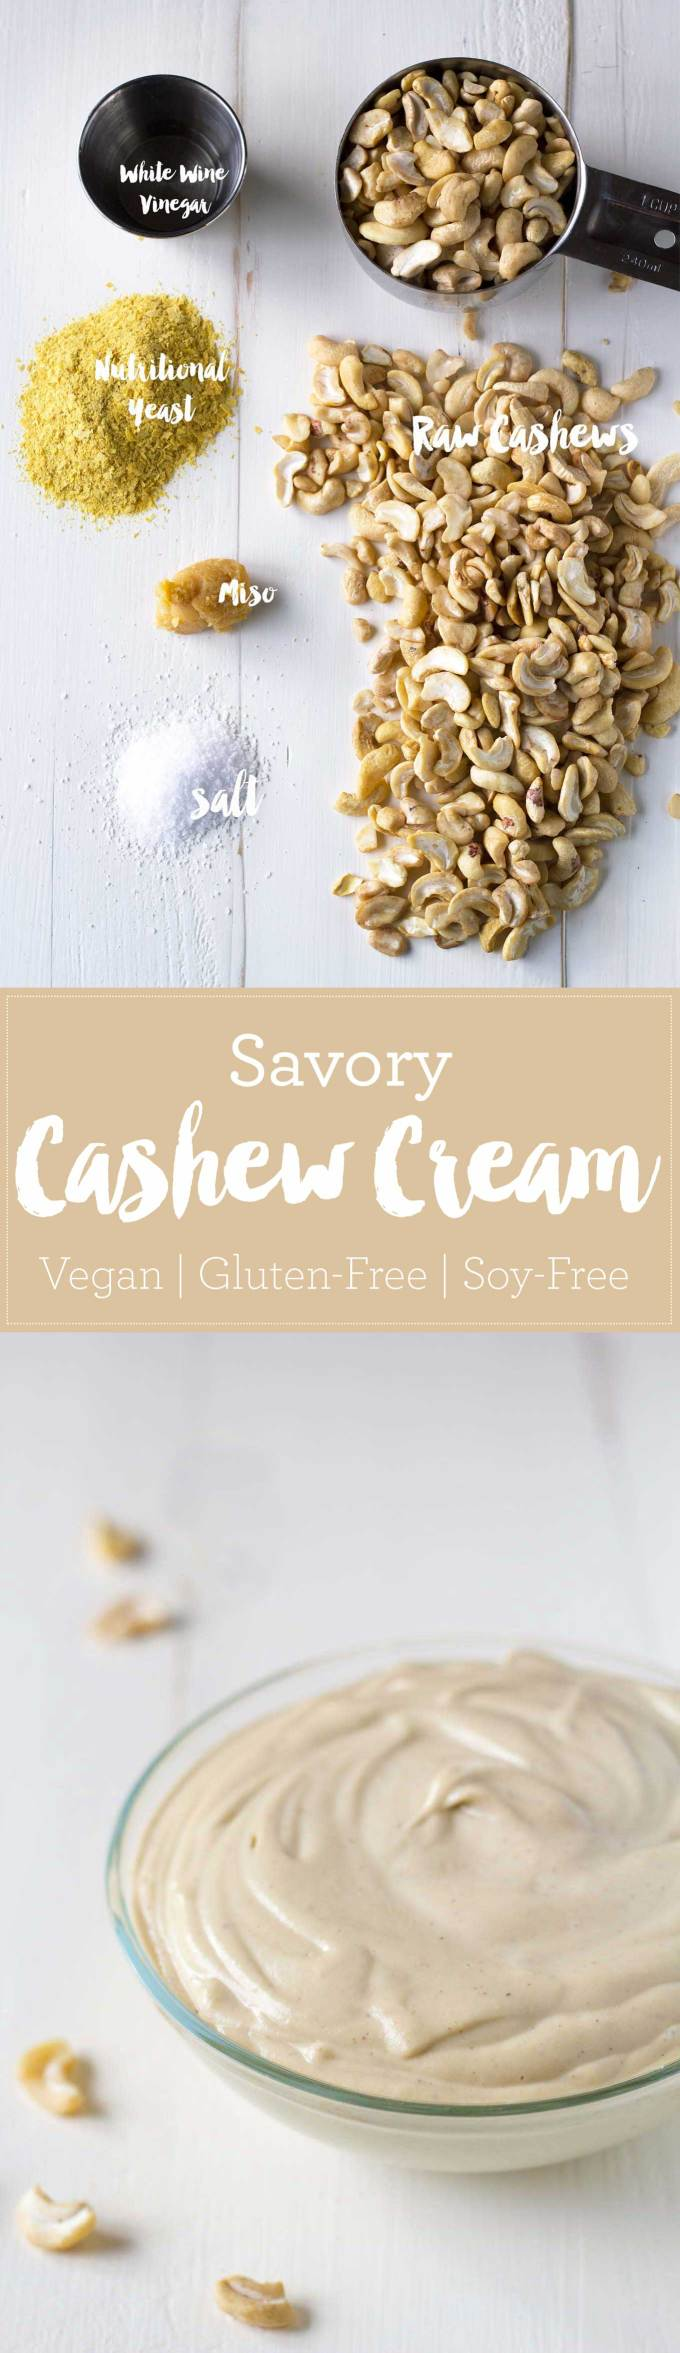 Use this savory cashew cream as a spread, add it to soups as a thickener, or use a soy-free vegan mayonnaise substitute!   https://passtheplants.com